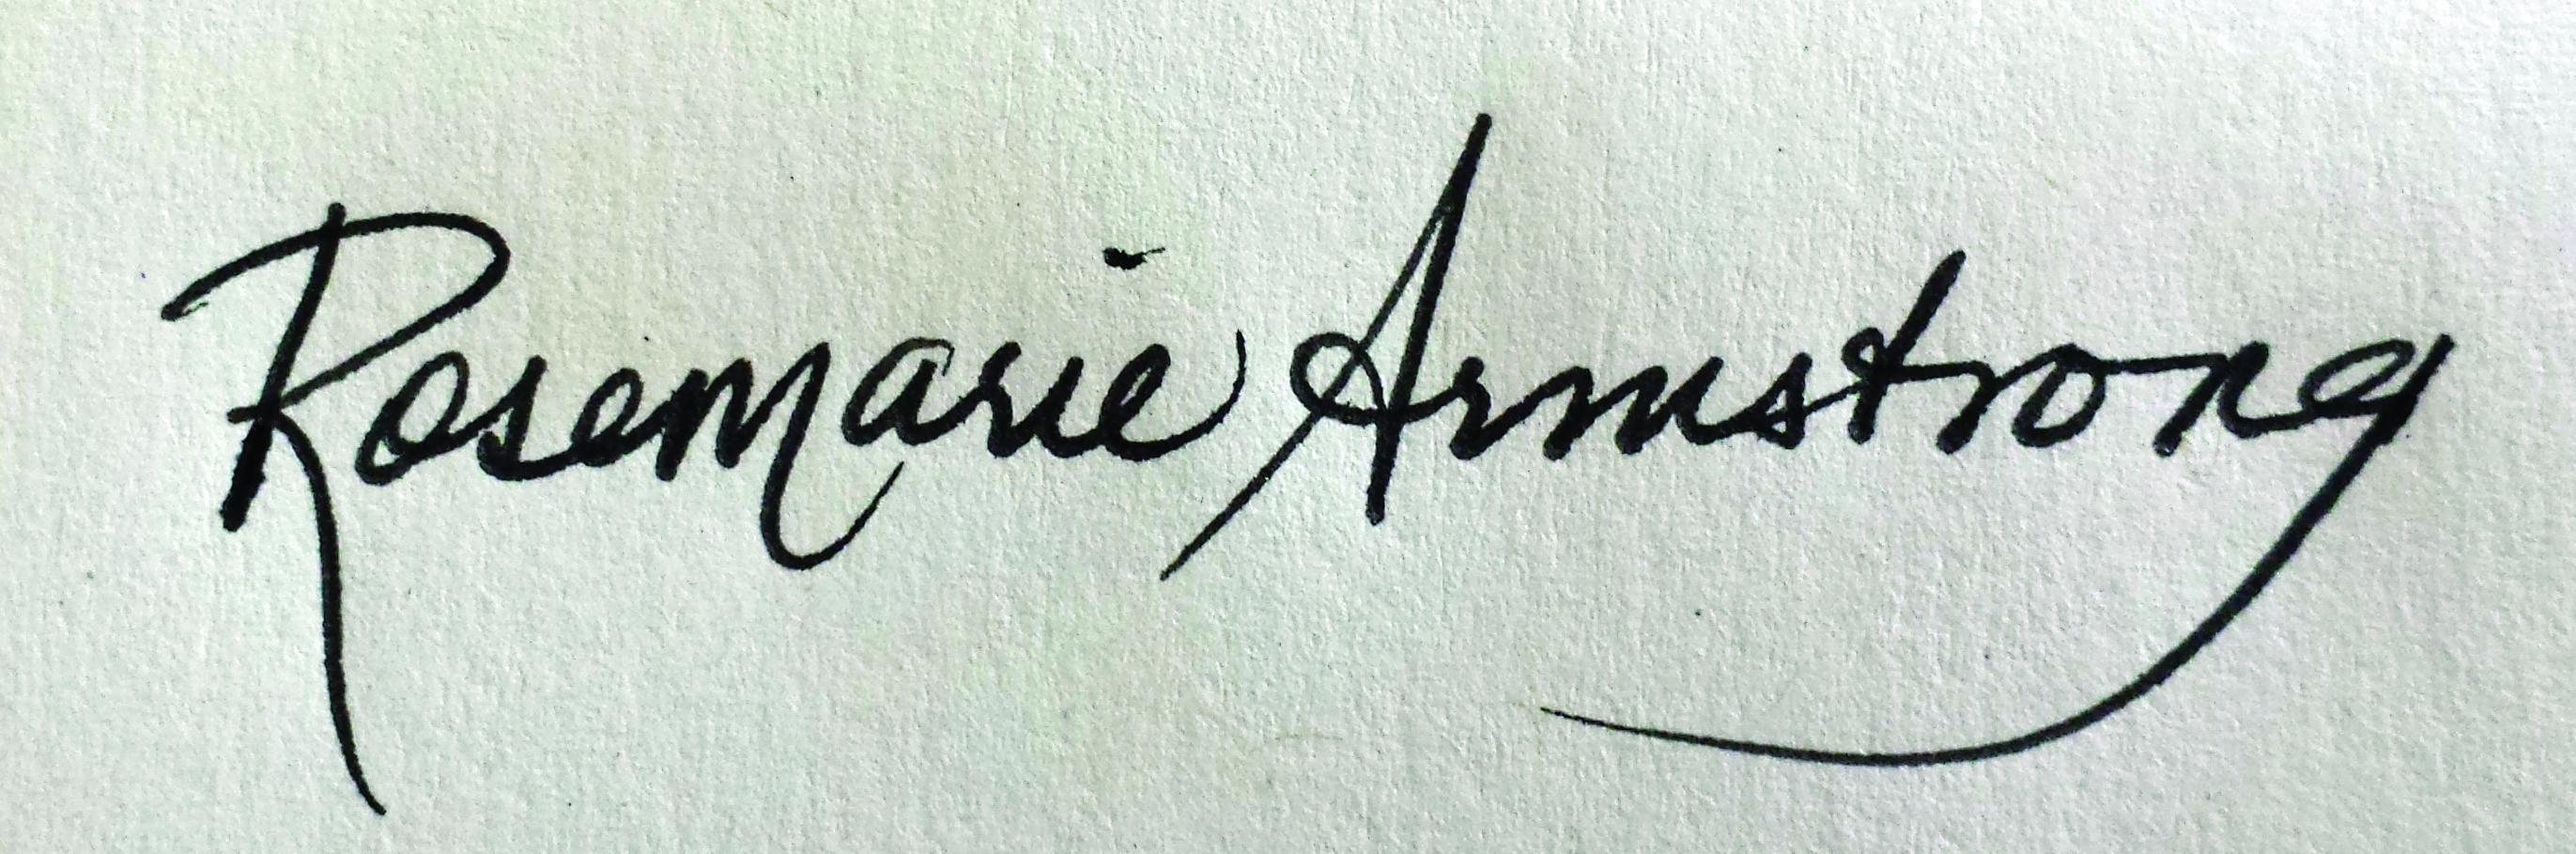 Rosemarie Armstrong's Signature